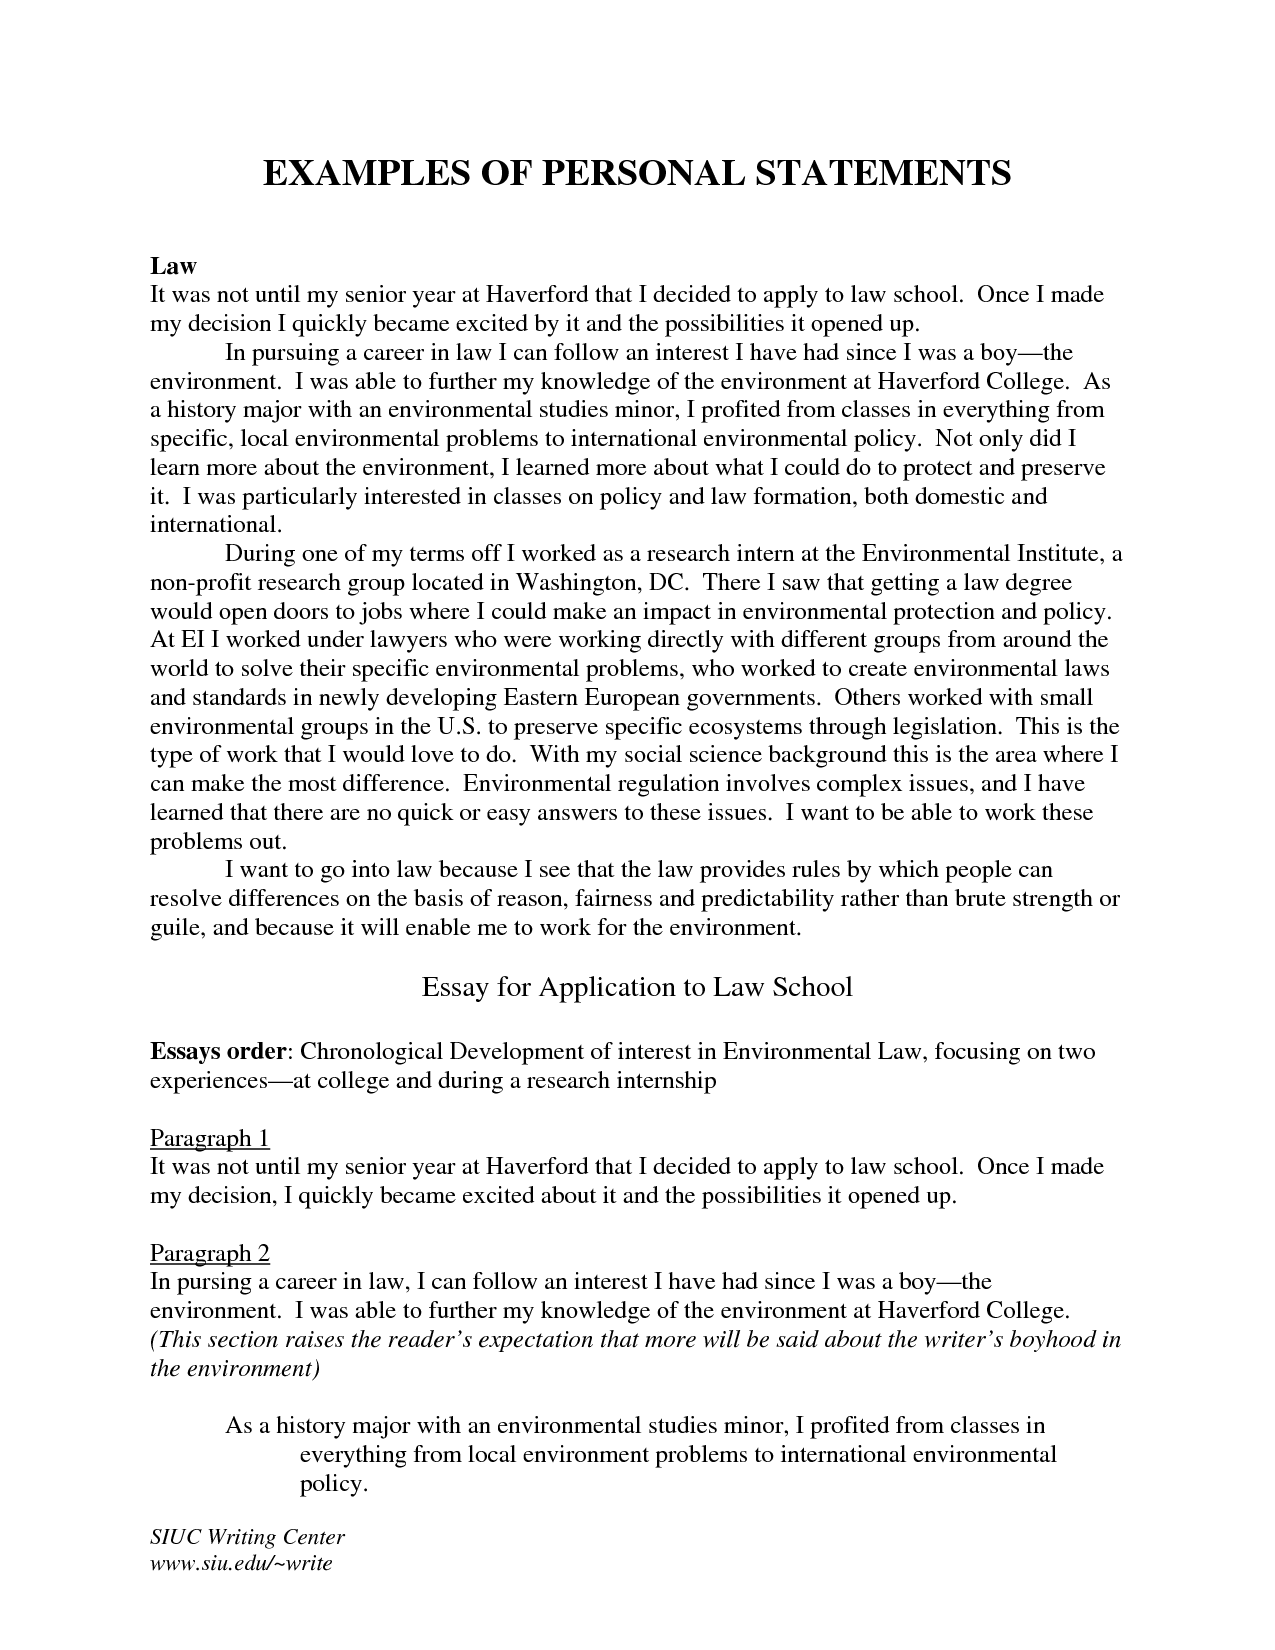 thesis statement in legal writing Components of a strong thesis, components of a weak thesis argumentative, debatable specific original, goes beyond class discussion can be supported with textual evidence answers the prompt clearly and concisely stated summarizes, states a fact broad, makes a generalization repeats class discussion or.